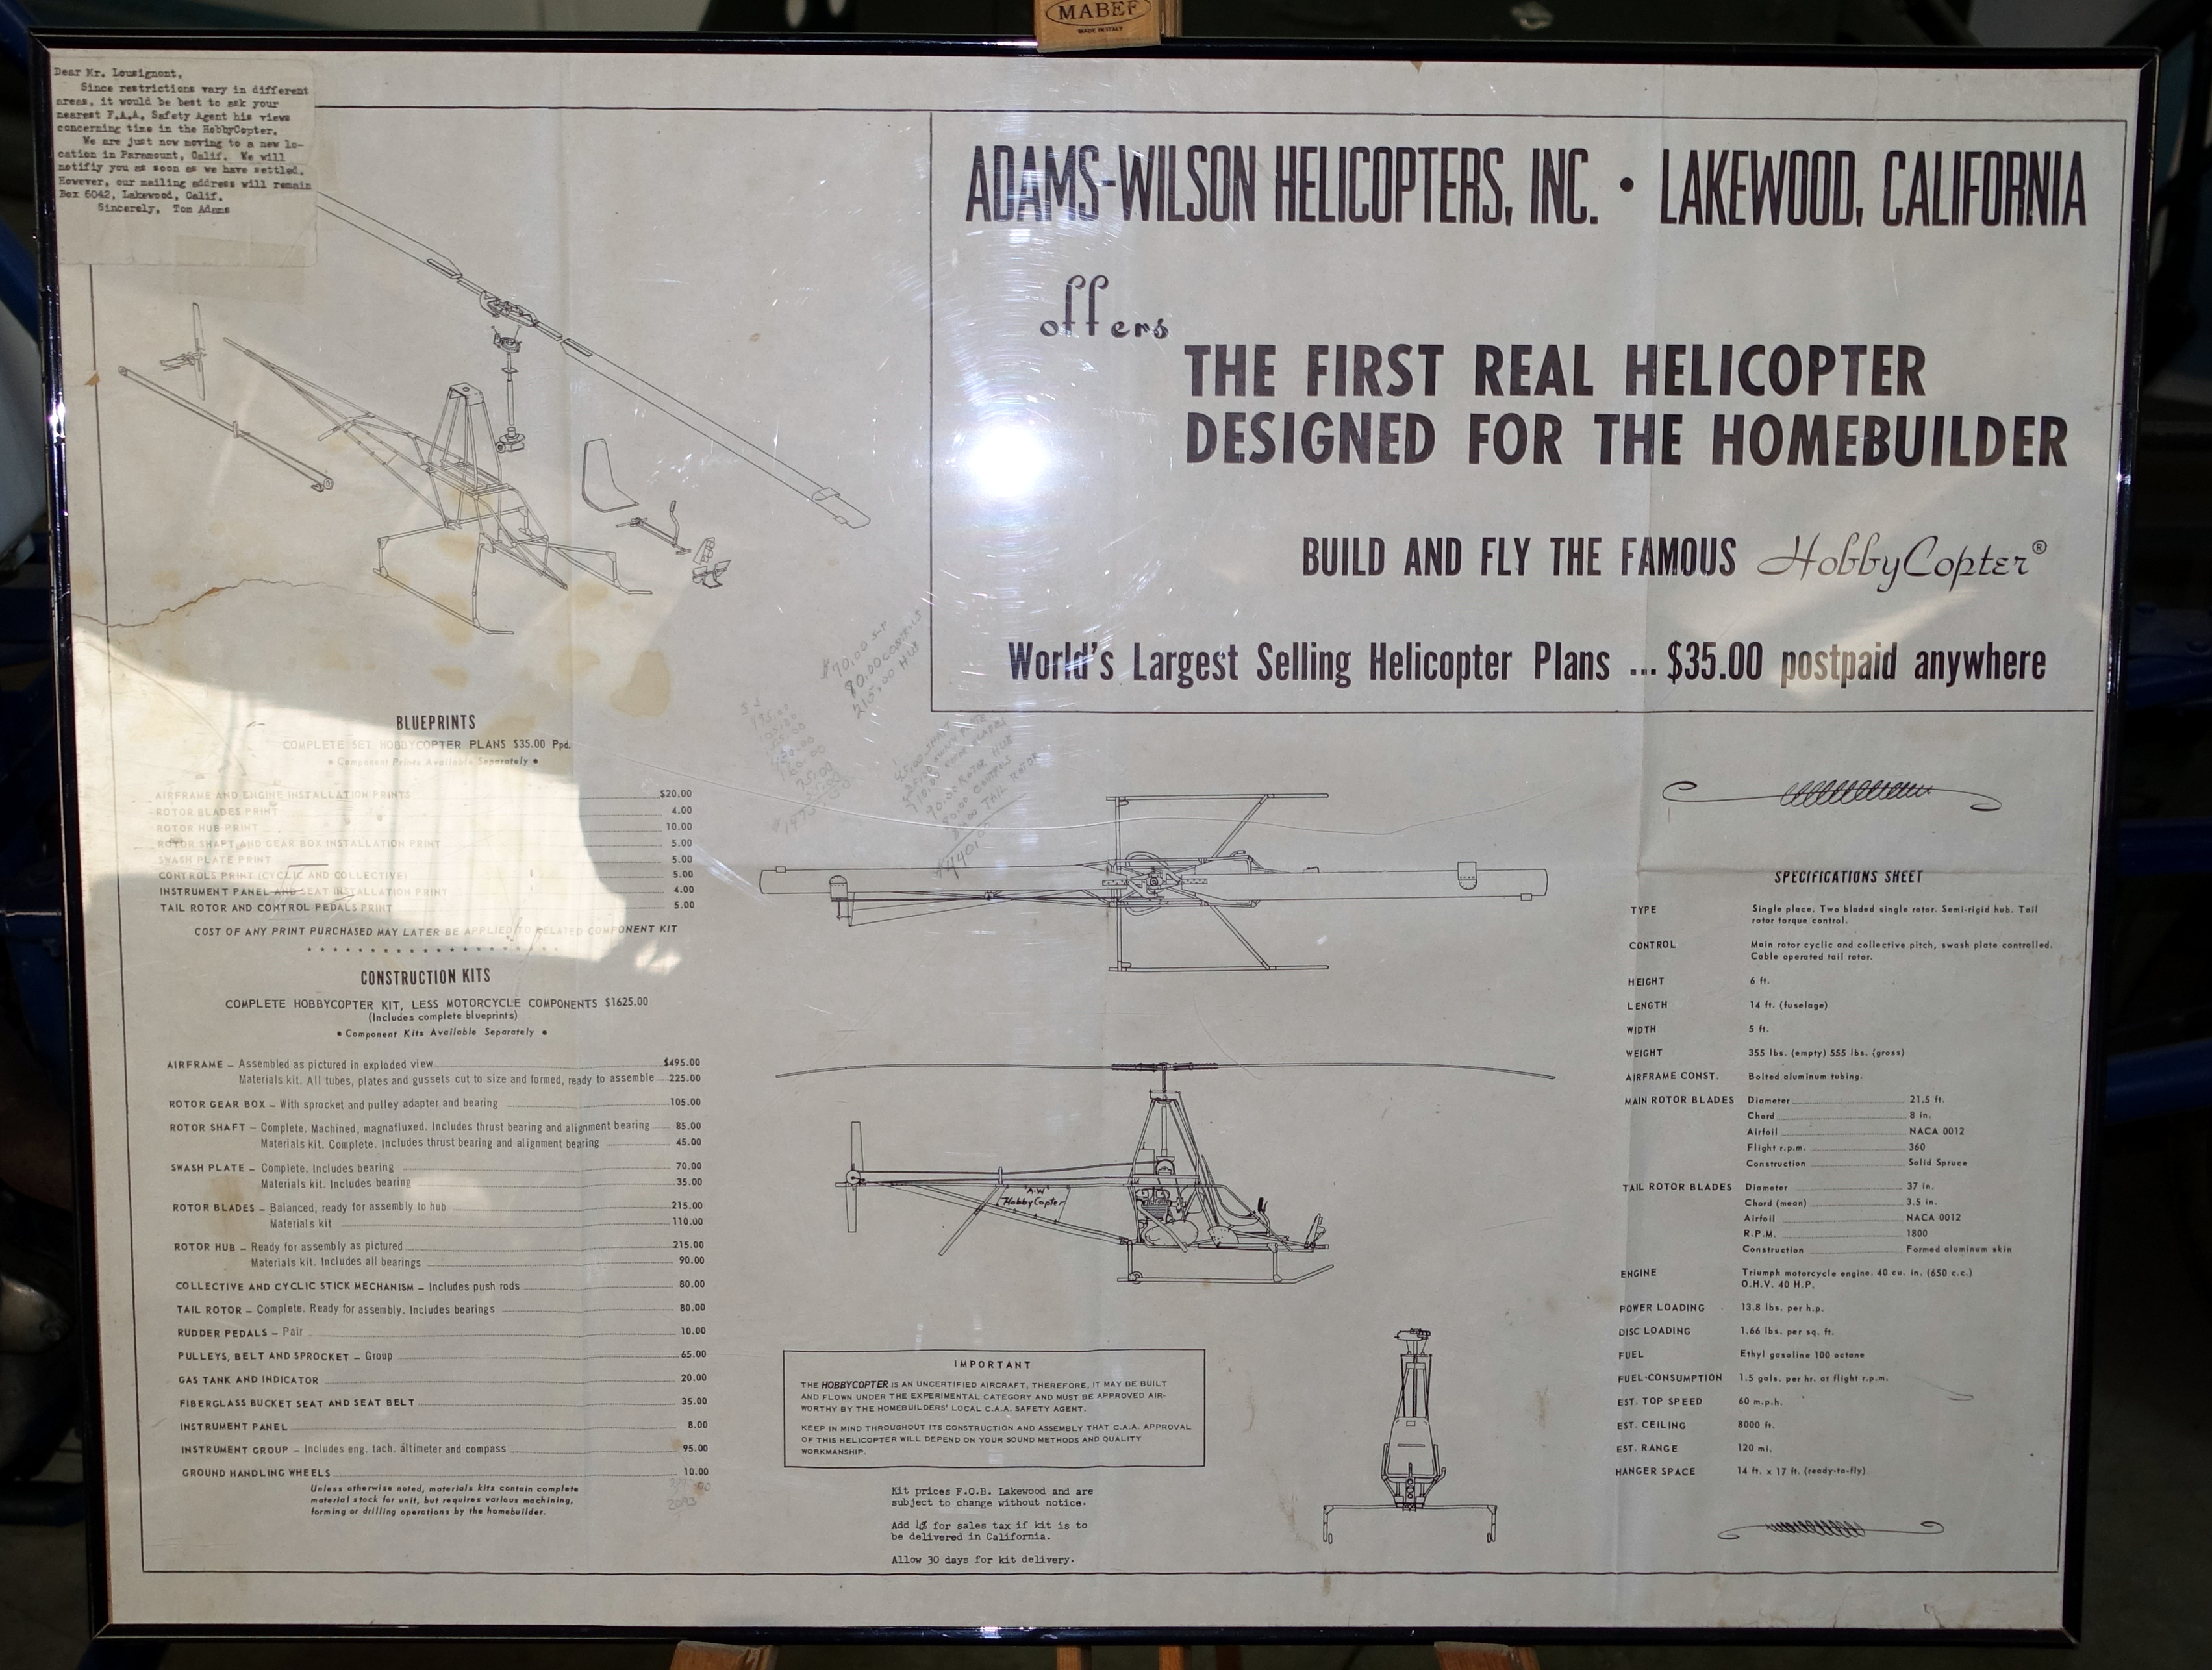 File:HobbyCopter poster, Adam-Wilson Helicopters, Inc , Lakewood